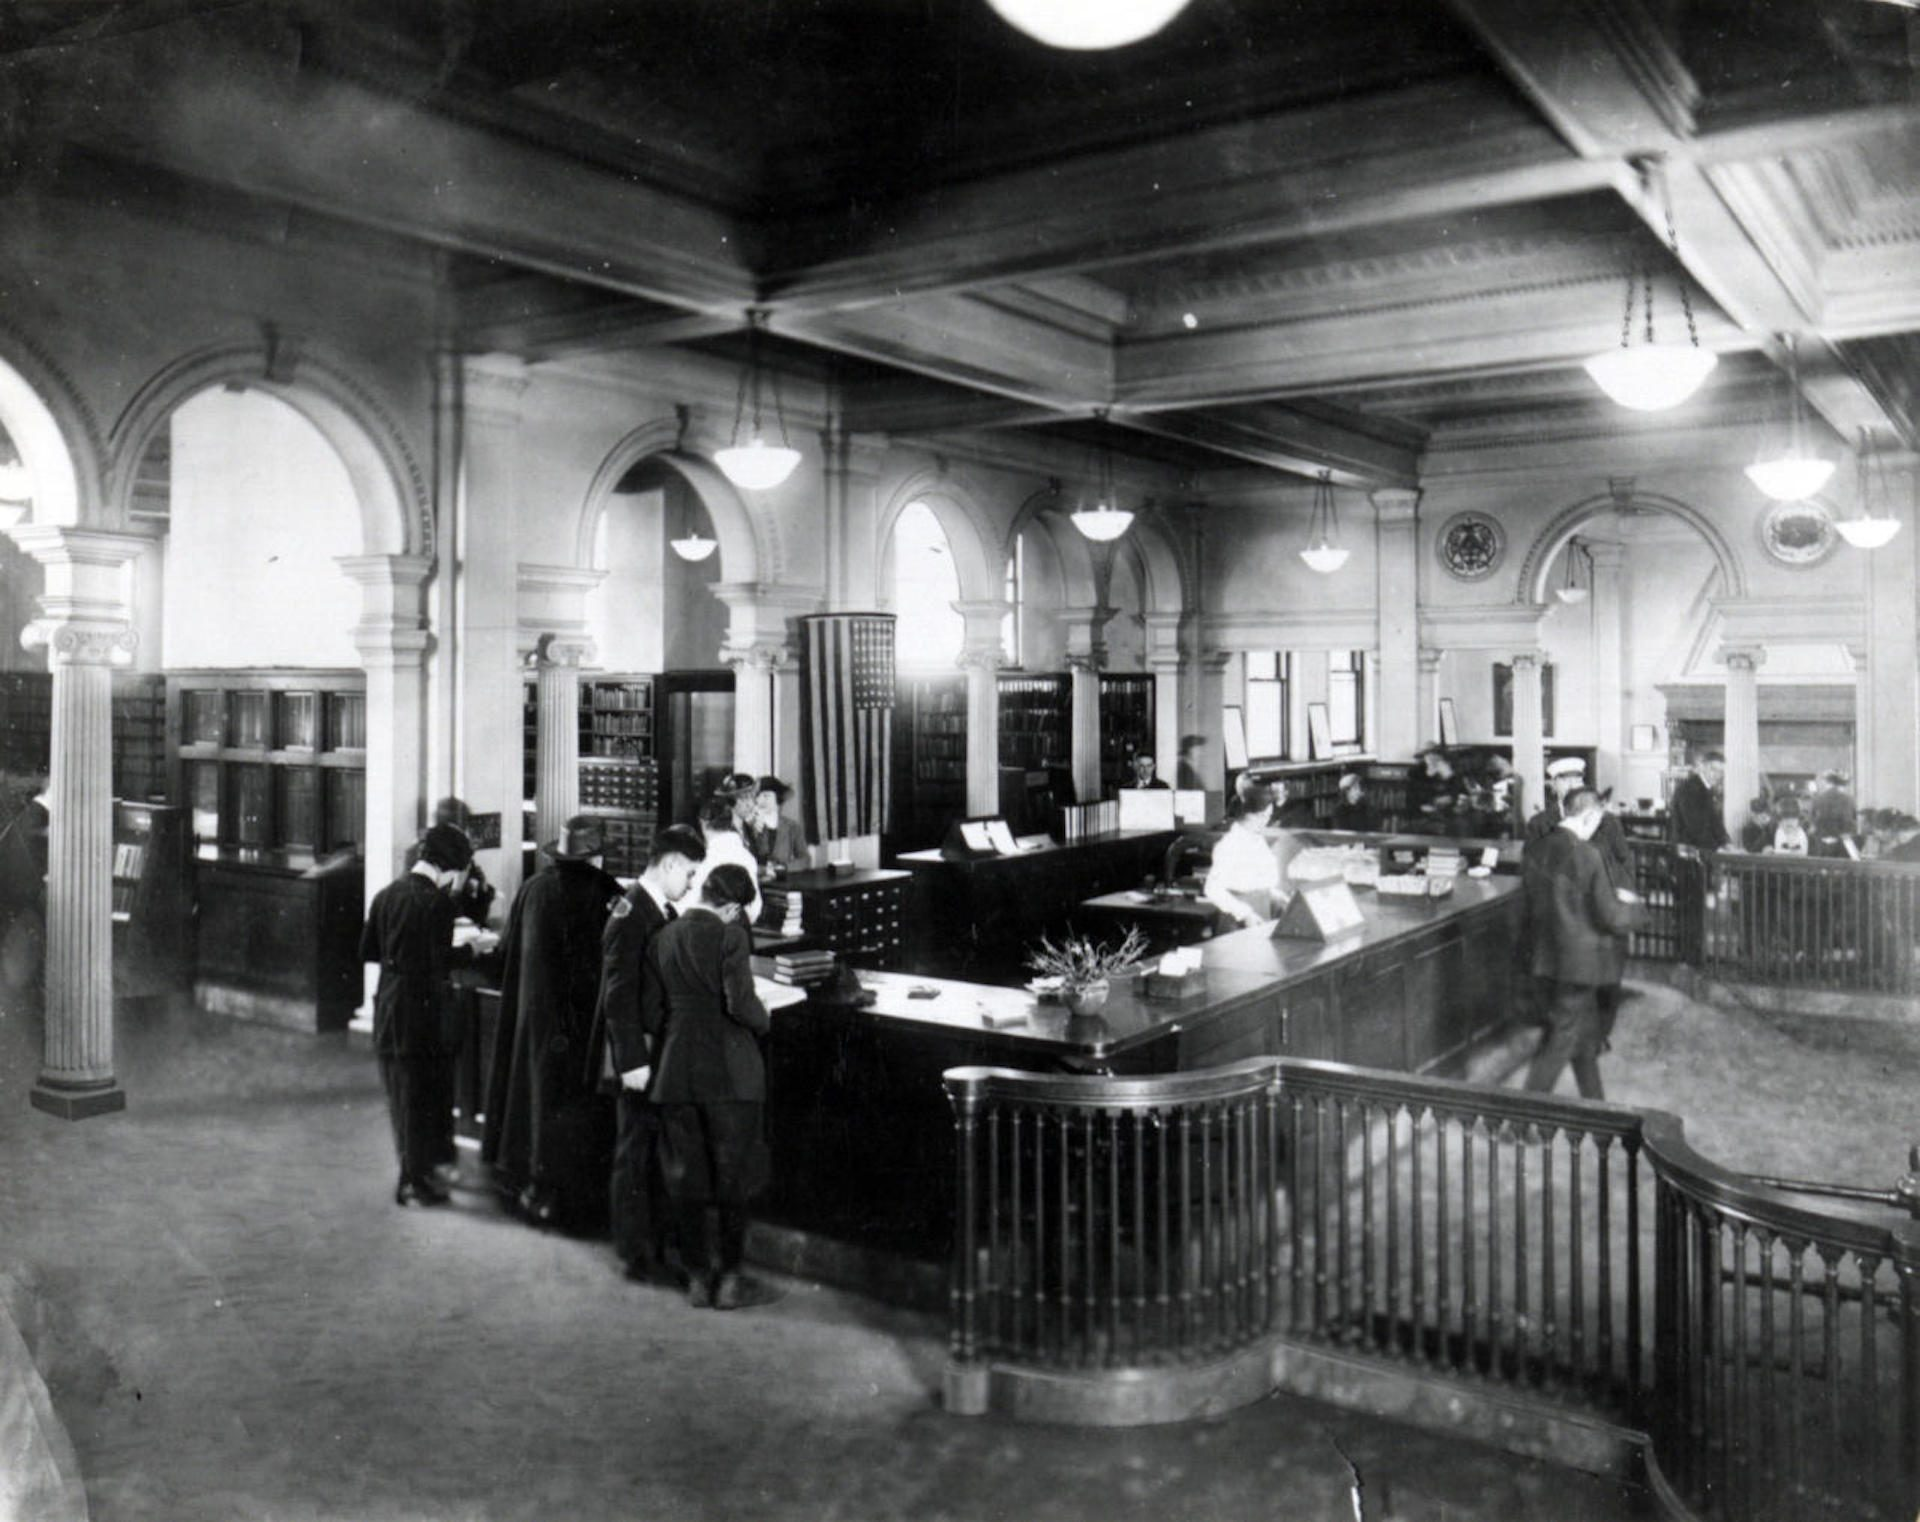 A circulation desk at the Carnegie Library of Pittsburgh around the late 19th, early 20th century. Prior to the library's open stack approach, only librarians could find and check out books for visitors.